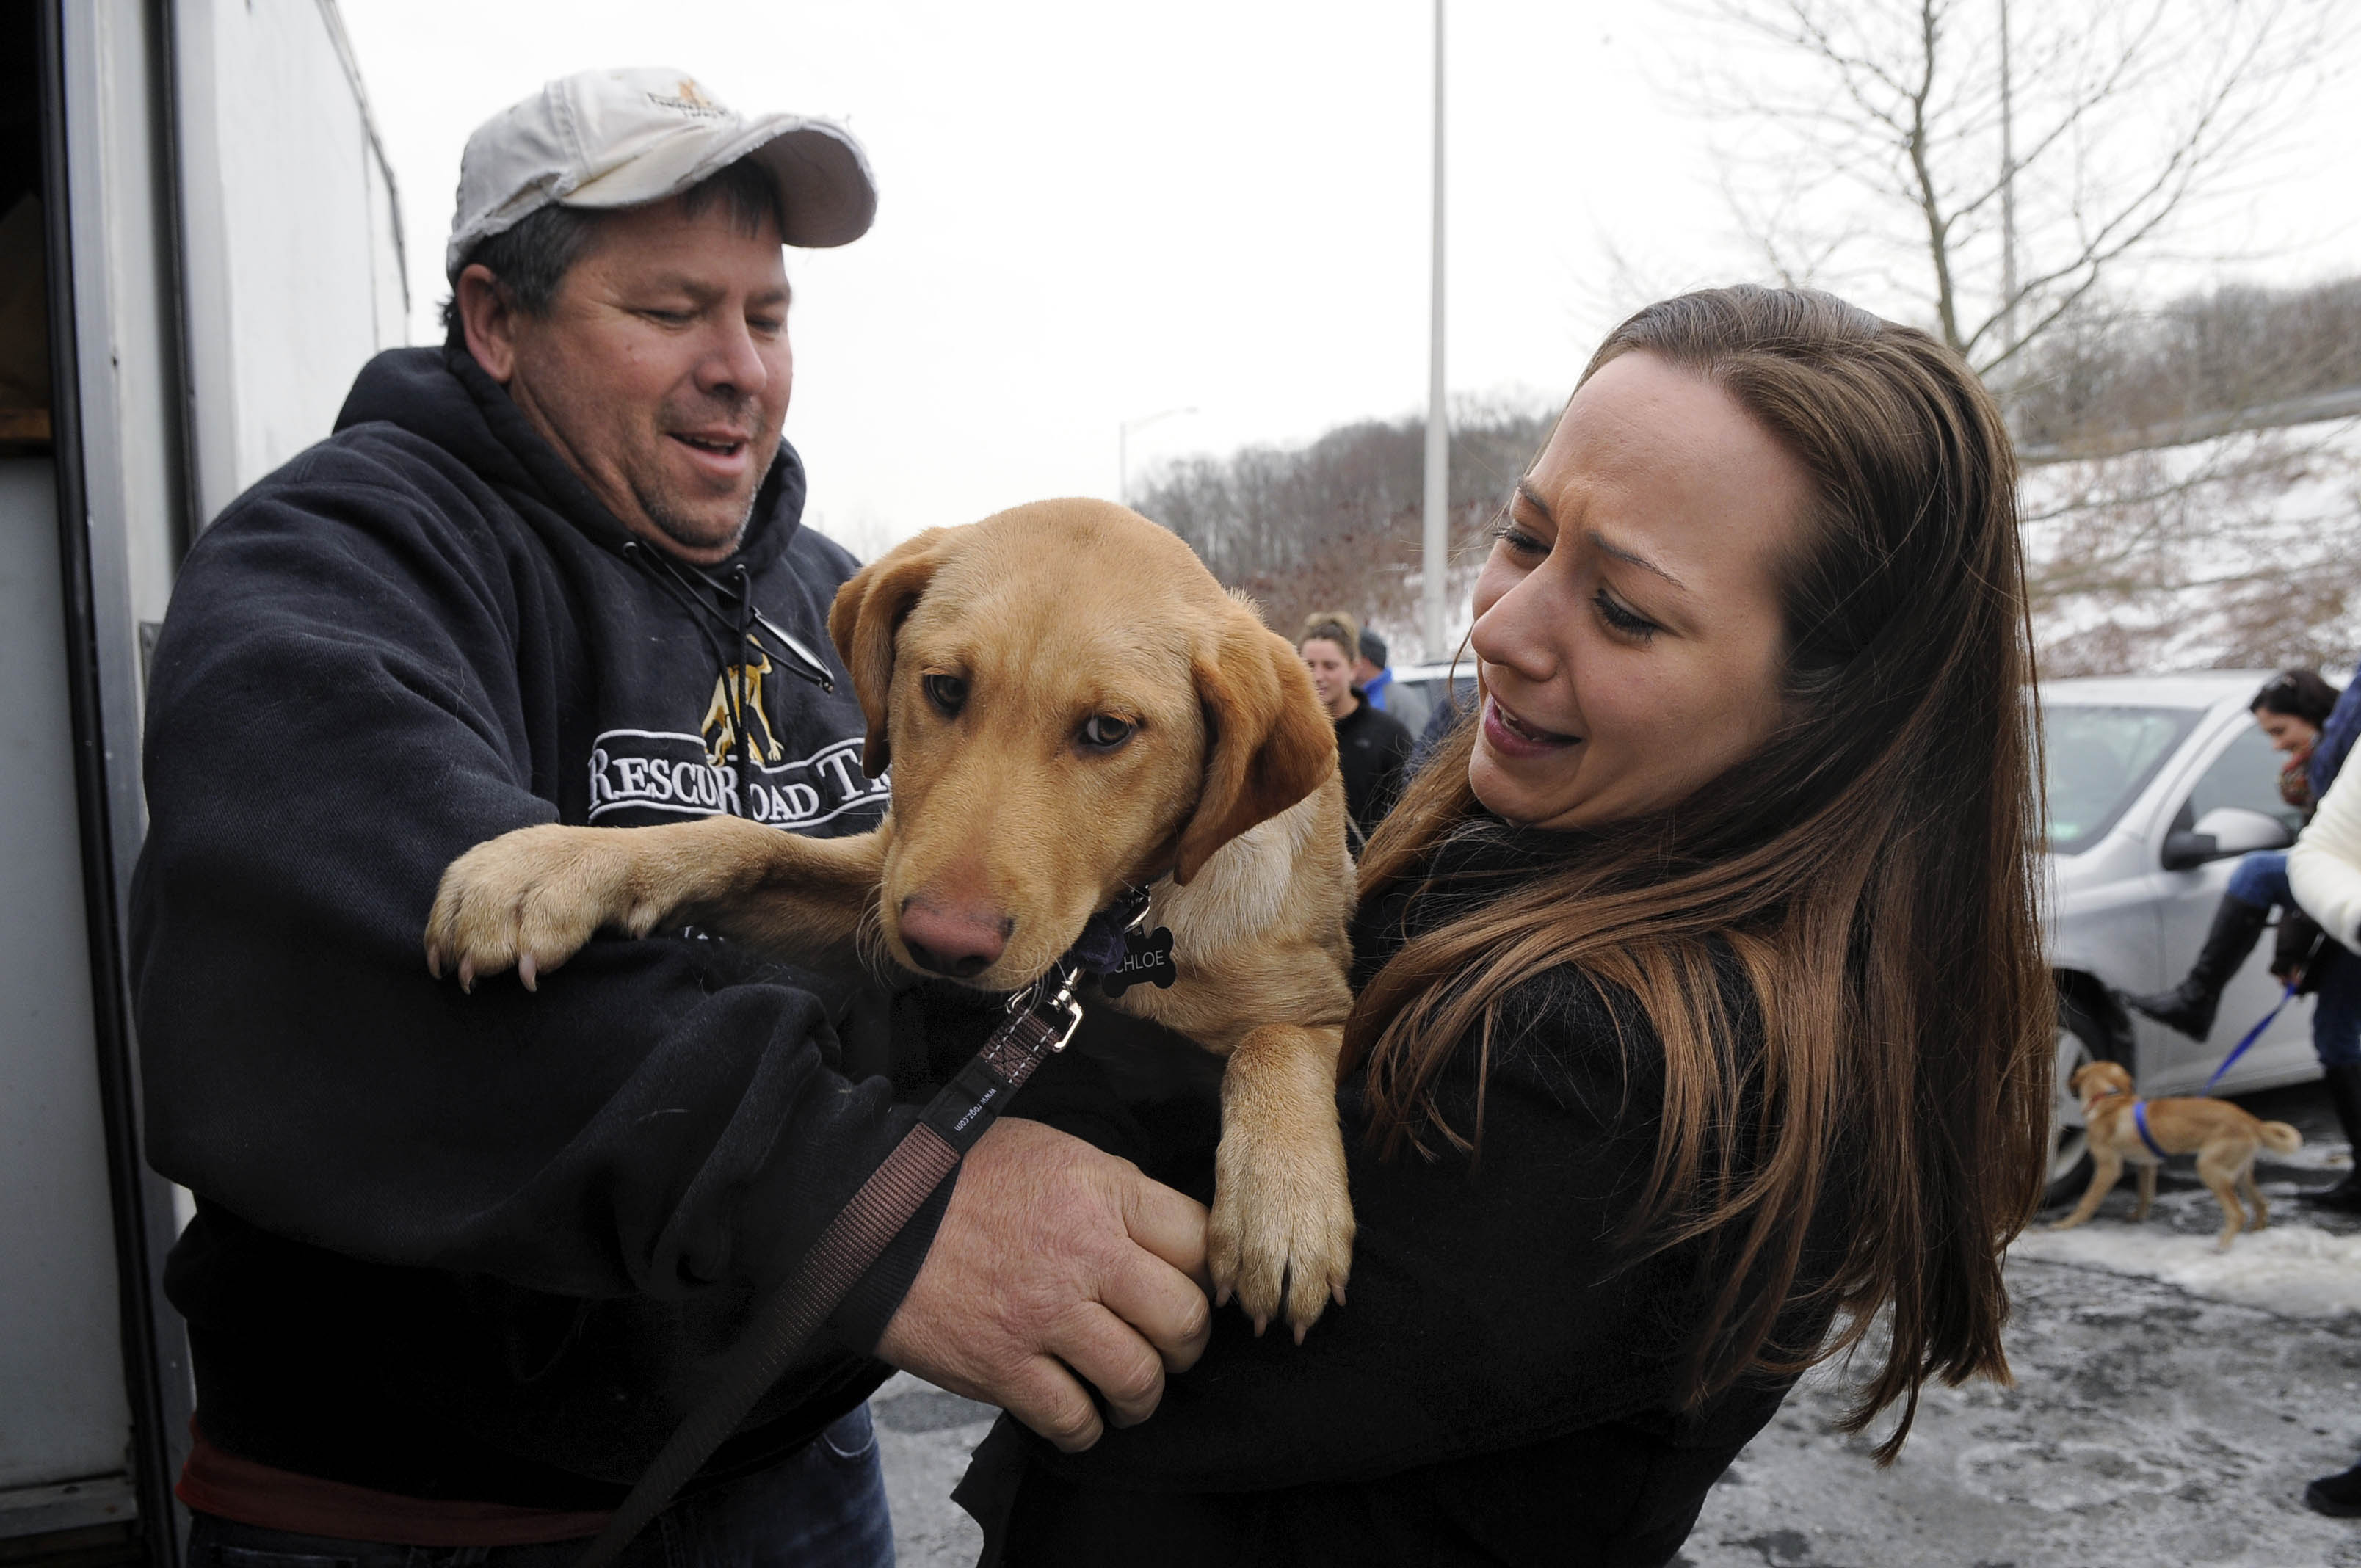 "DANBURY 01/25/14 Greg Mahle, of Zanesville, Ohio, (left) hands Chloe, a rescue dog, over to her new owner, Jessica Catropa, of Monroe, during a stop of Rescue Road Trips at a commuter parking lot off I-84 in Danbury Saturday.  ""We are so excited to get her and give her a safe, warm and loving home,"" said Catropa.  CLOE POISSON